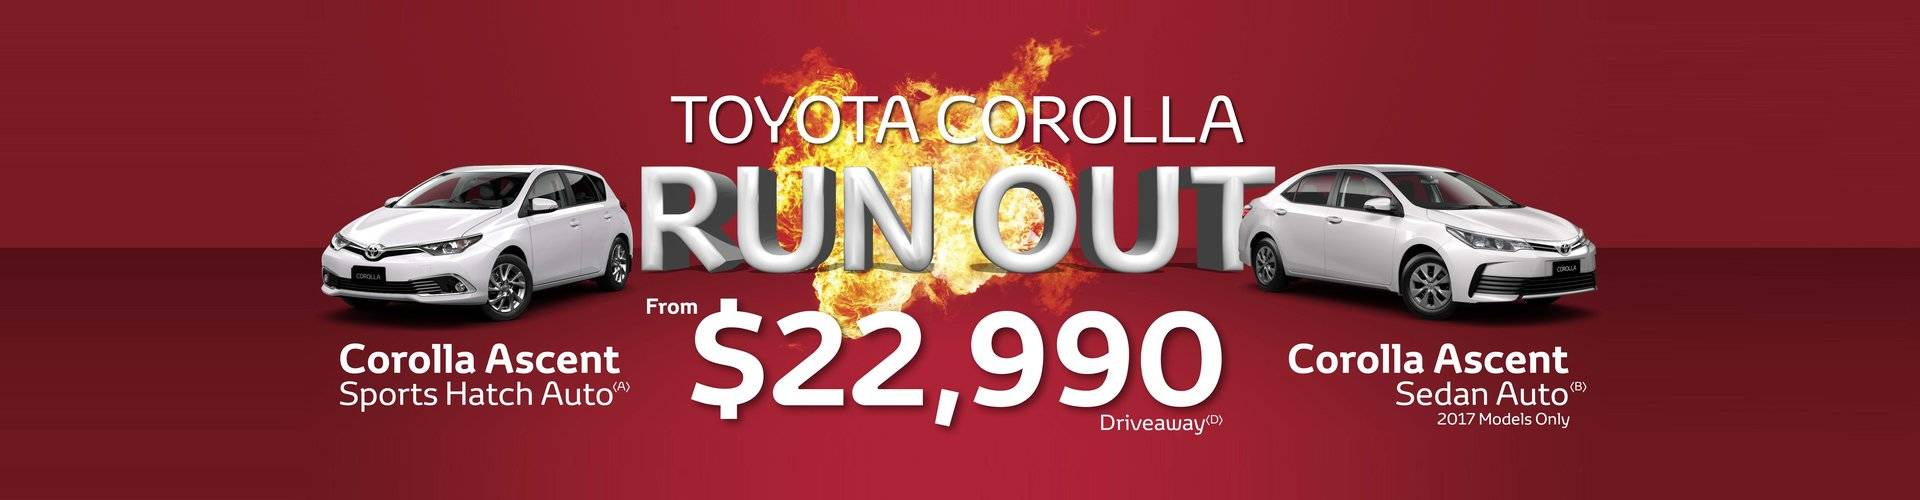 Toyota Corolla Run Out Sale